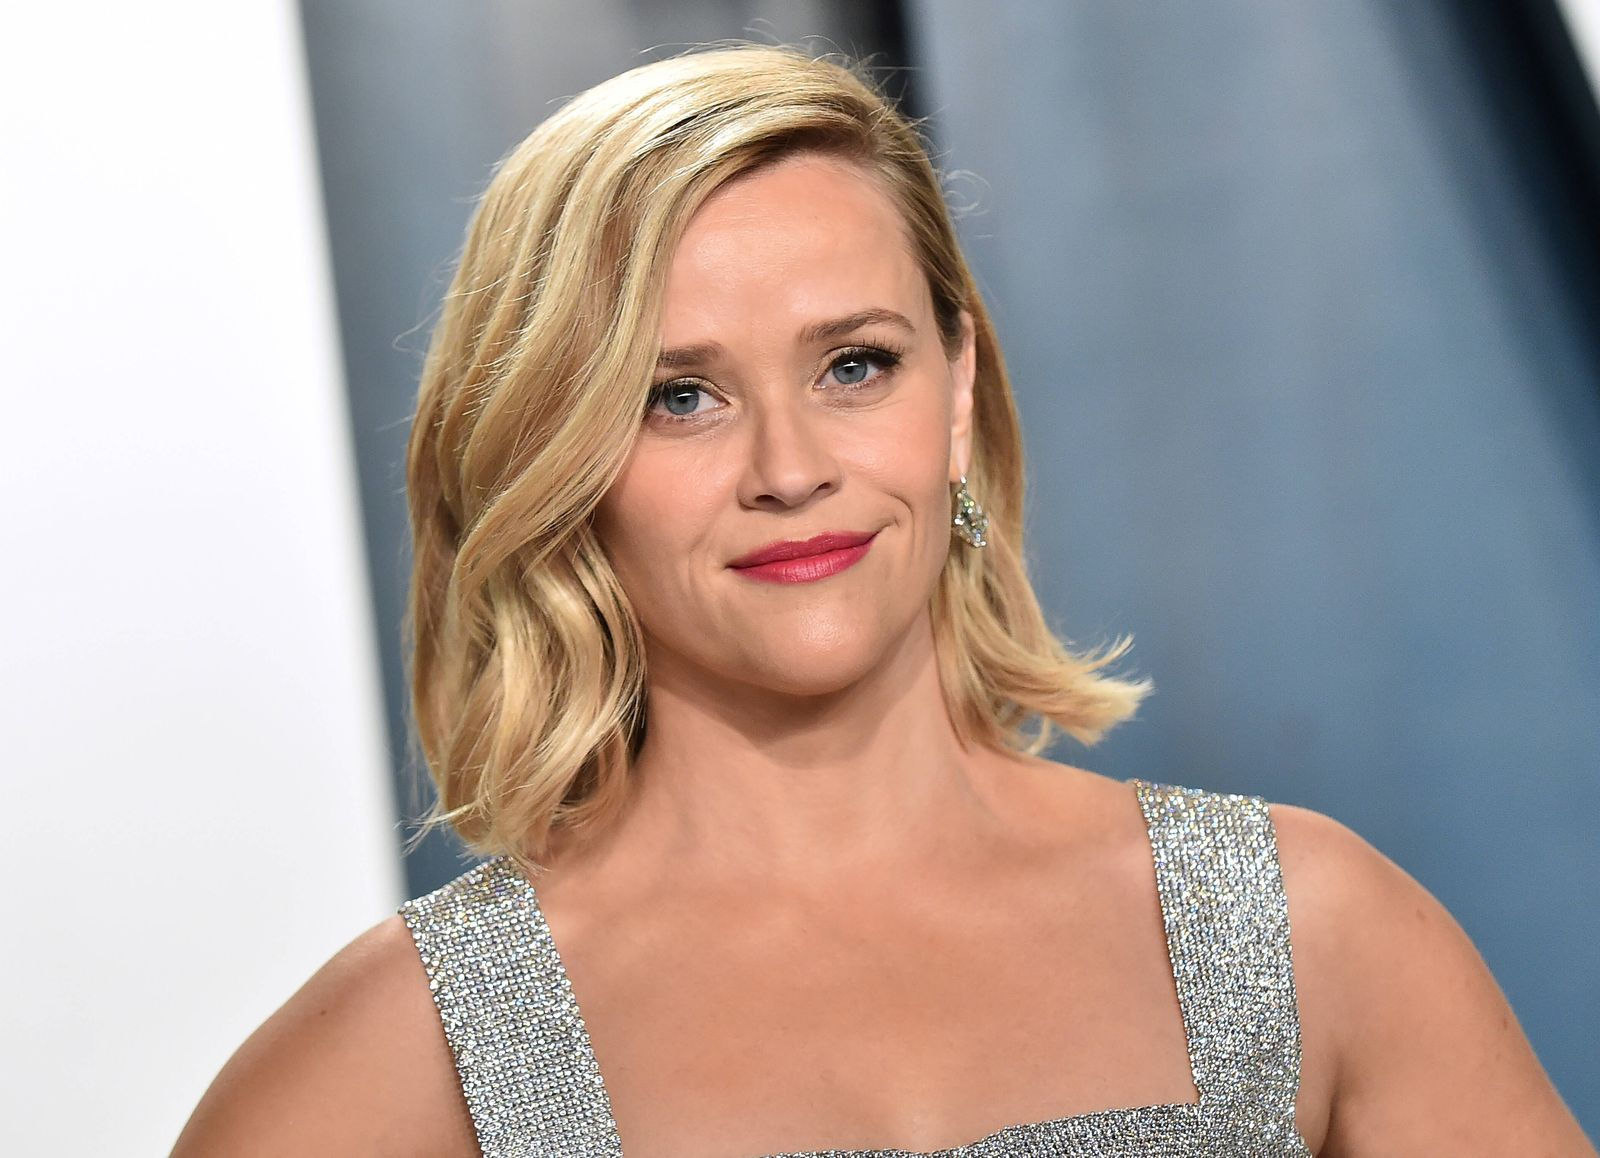 Reese Witherspoon arriving at the Vanity Fair Oscar Party in Beverly Hills, California - Feb 9, 2020 - Vanity Fair Oscar